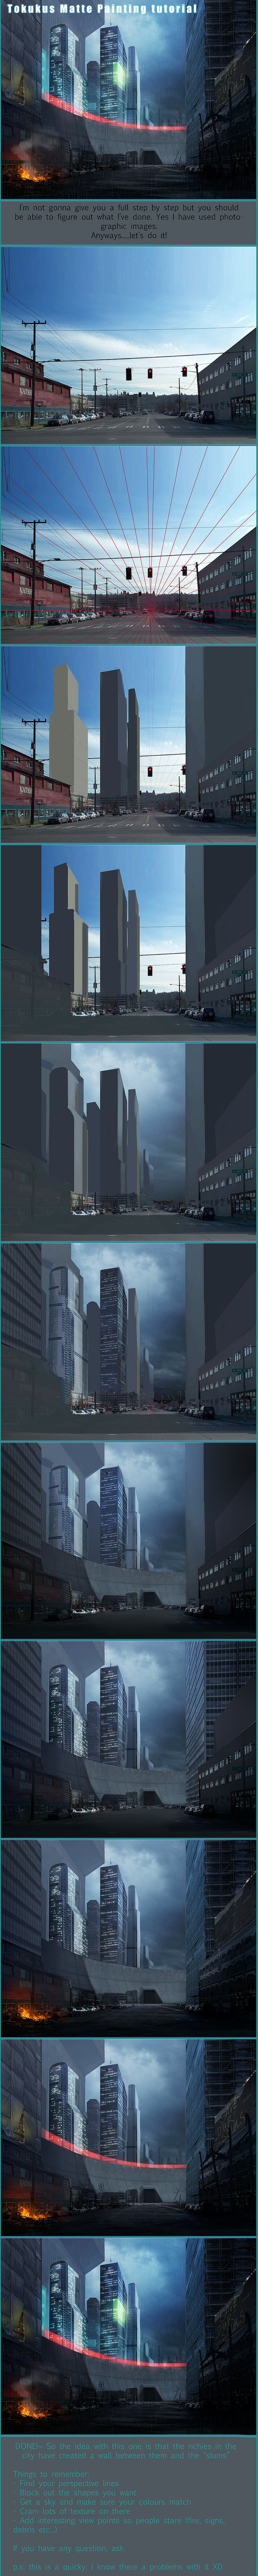 Matte Painting Tutorial by tokuku.deviantart.com on @DeviantArt